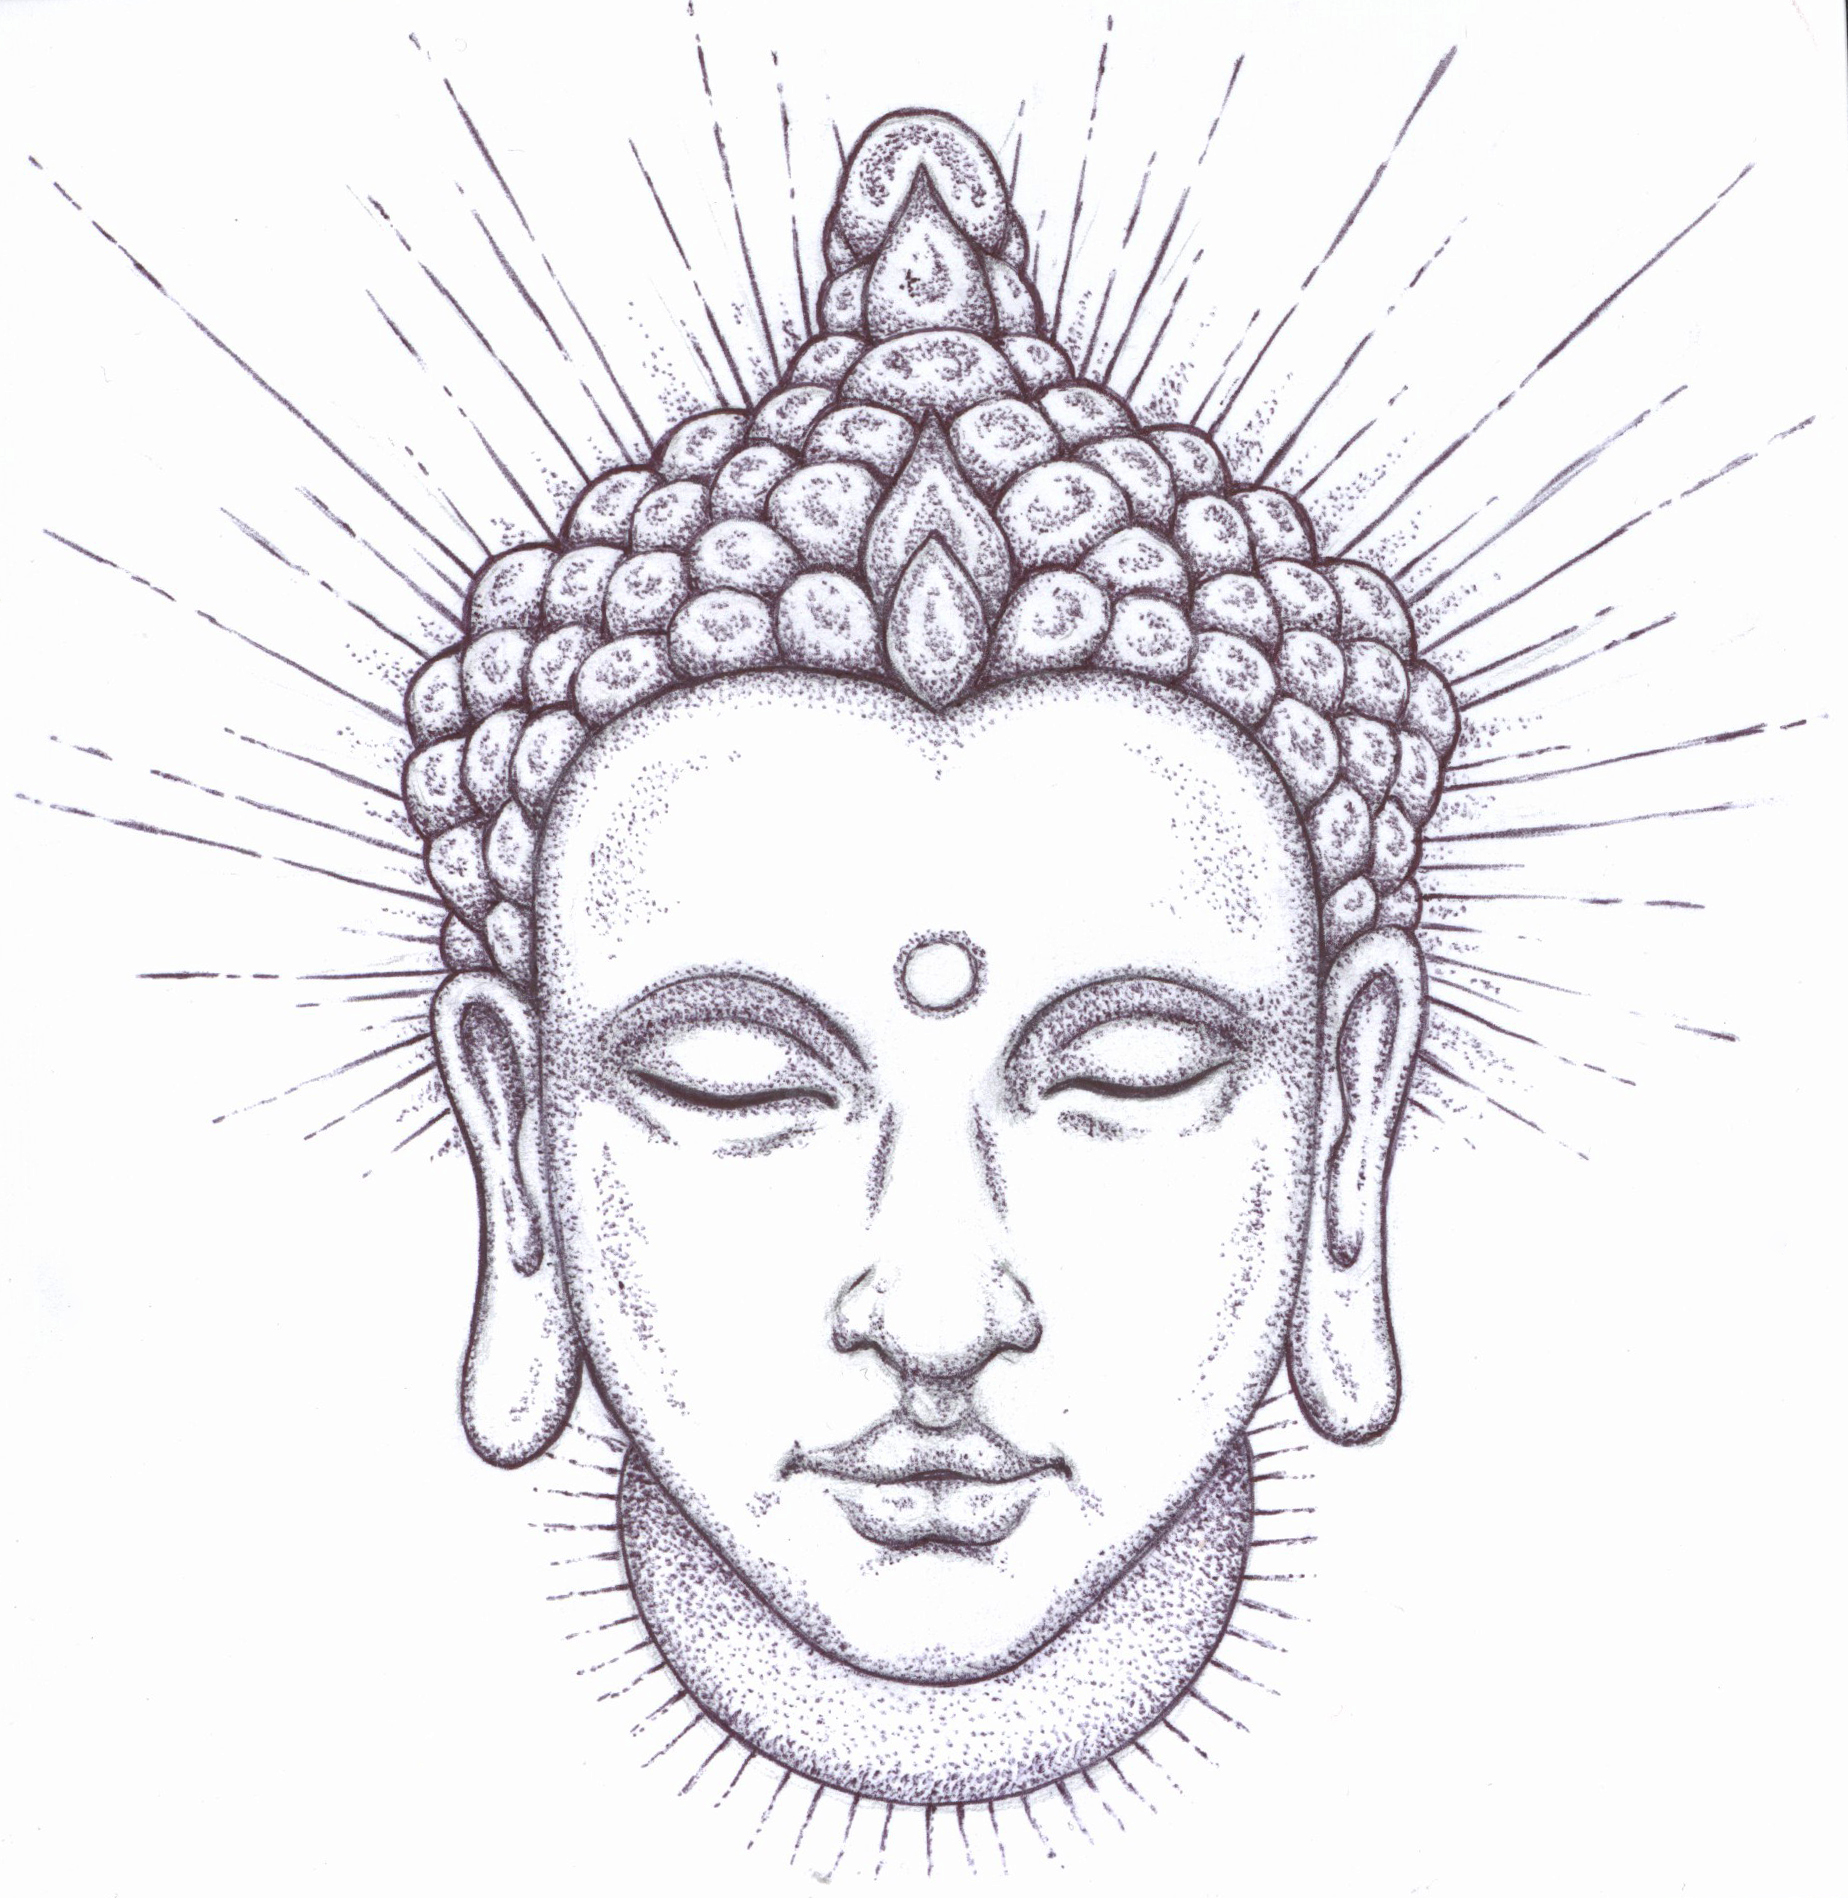 Buddha Face Line Drawing : Best images collections hd for gadget windows mac android